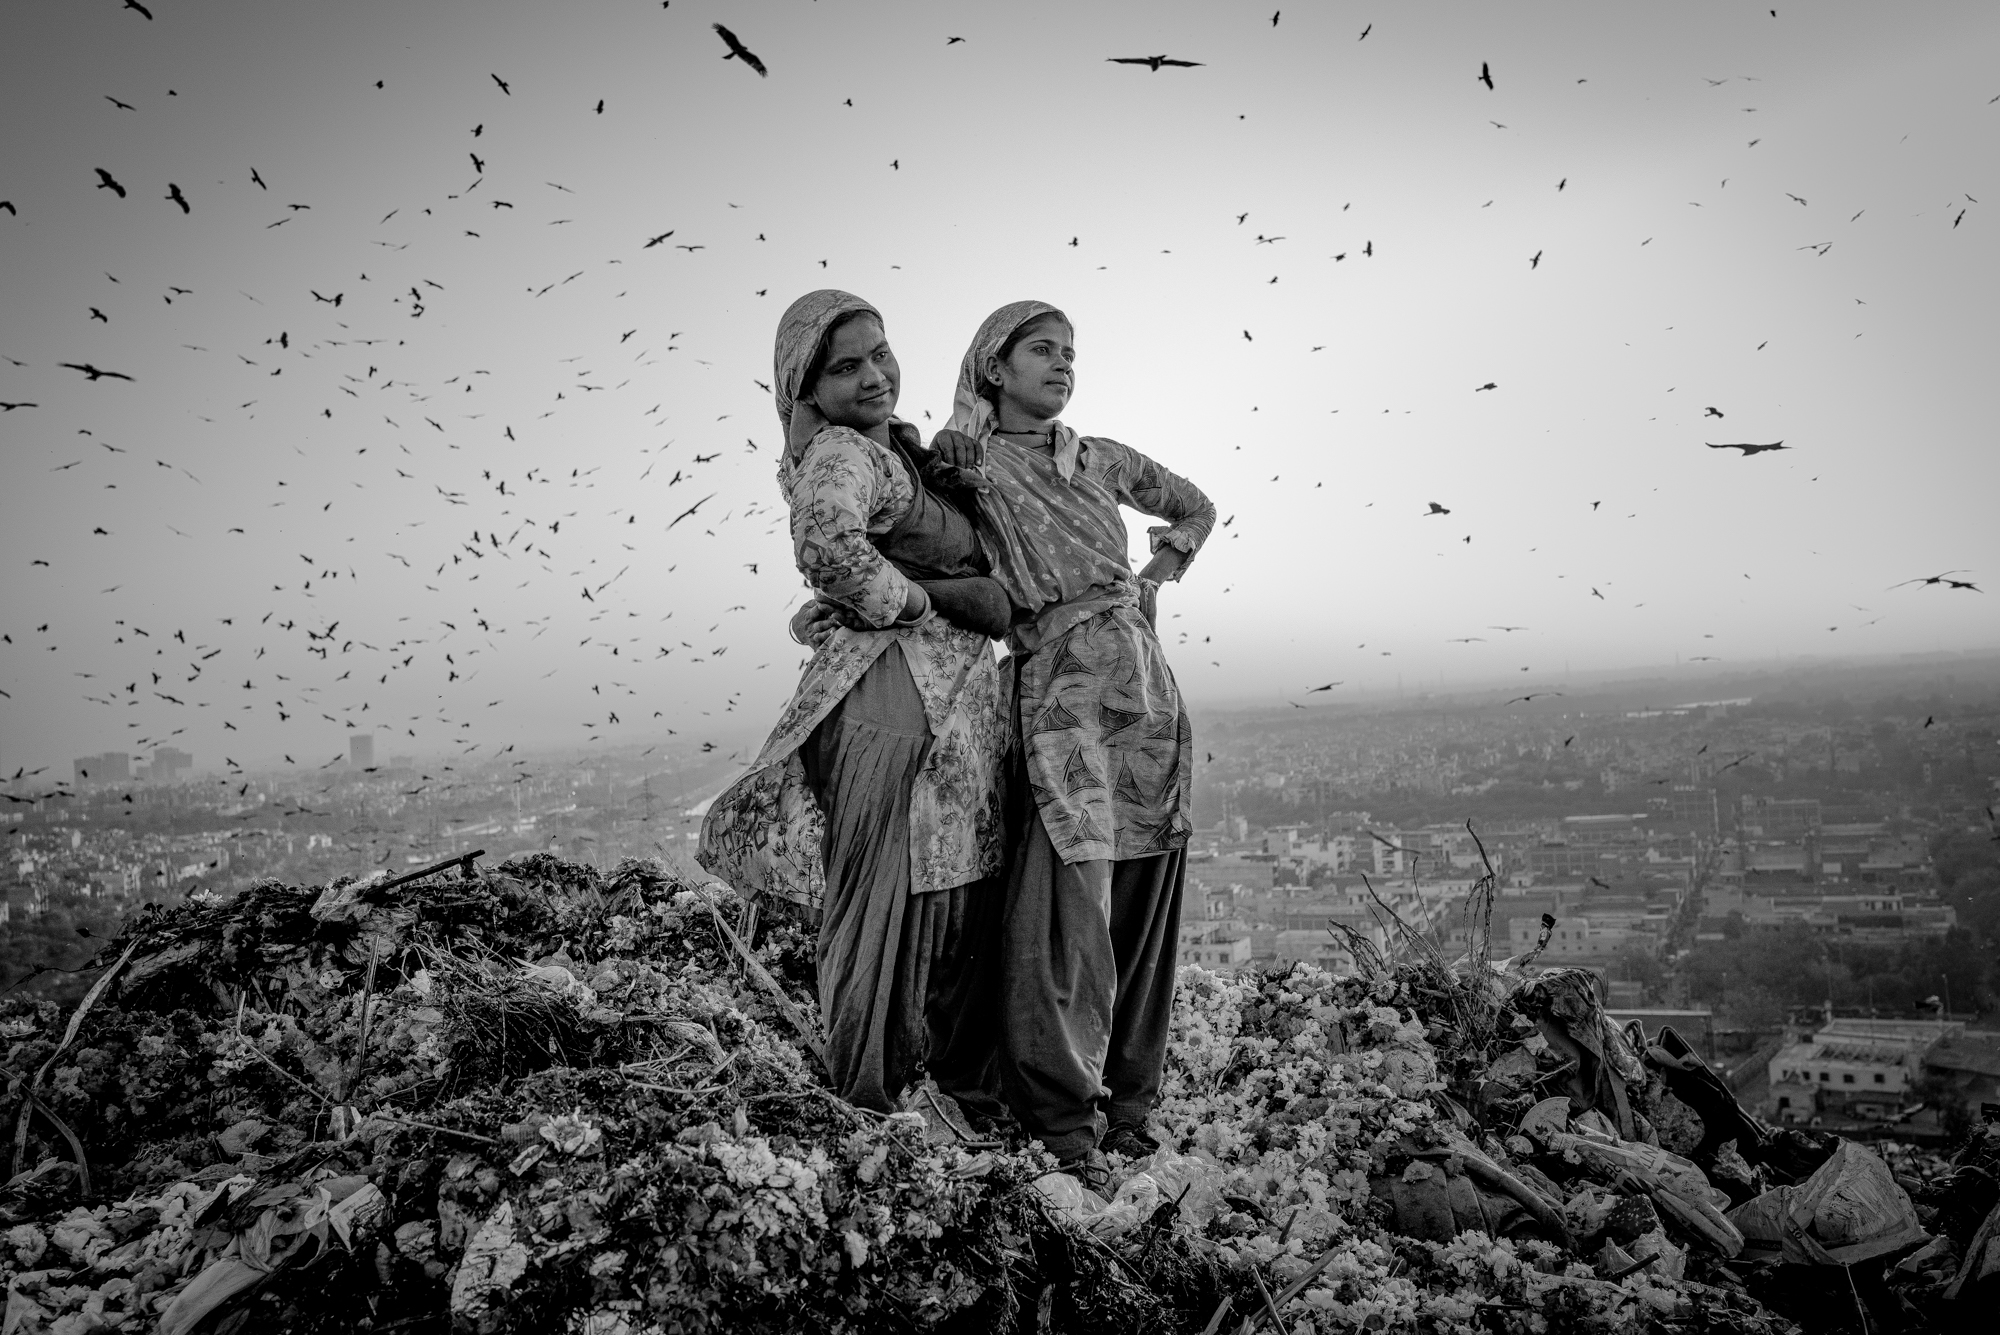 black&white photograph of to women in India by Robin Tutenges